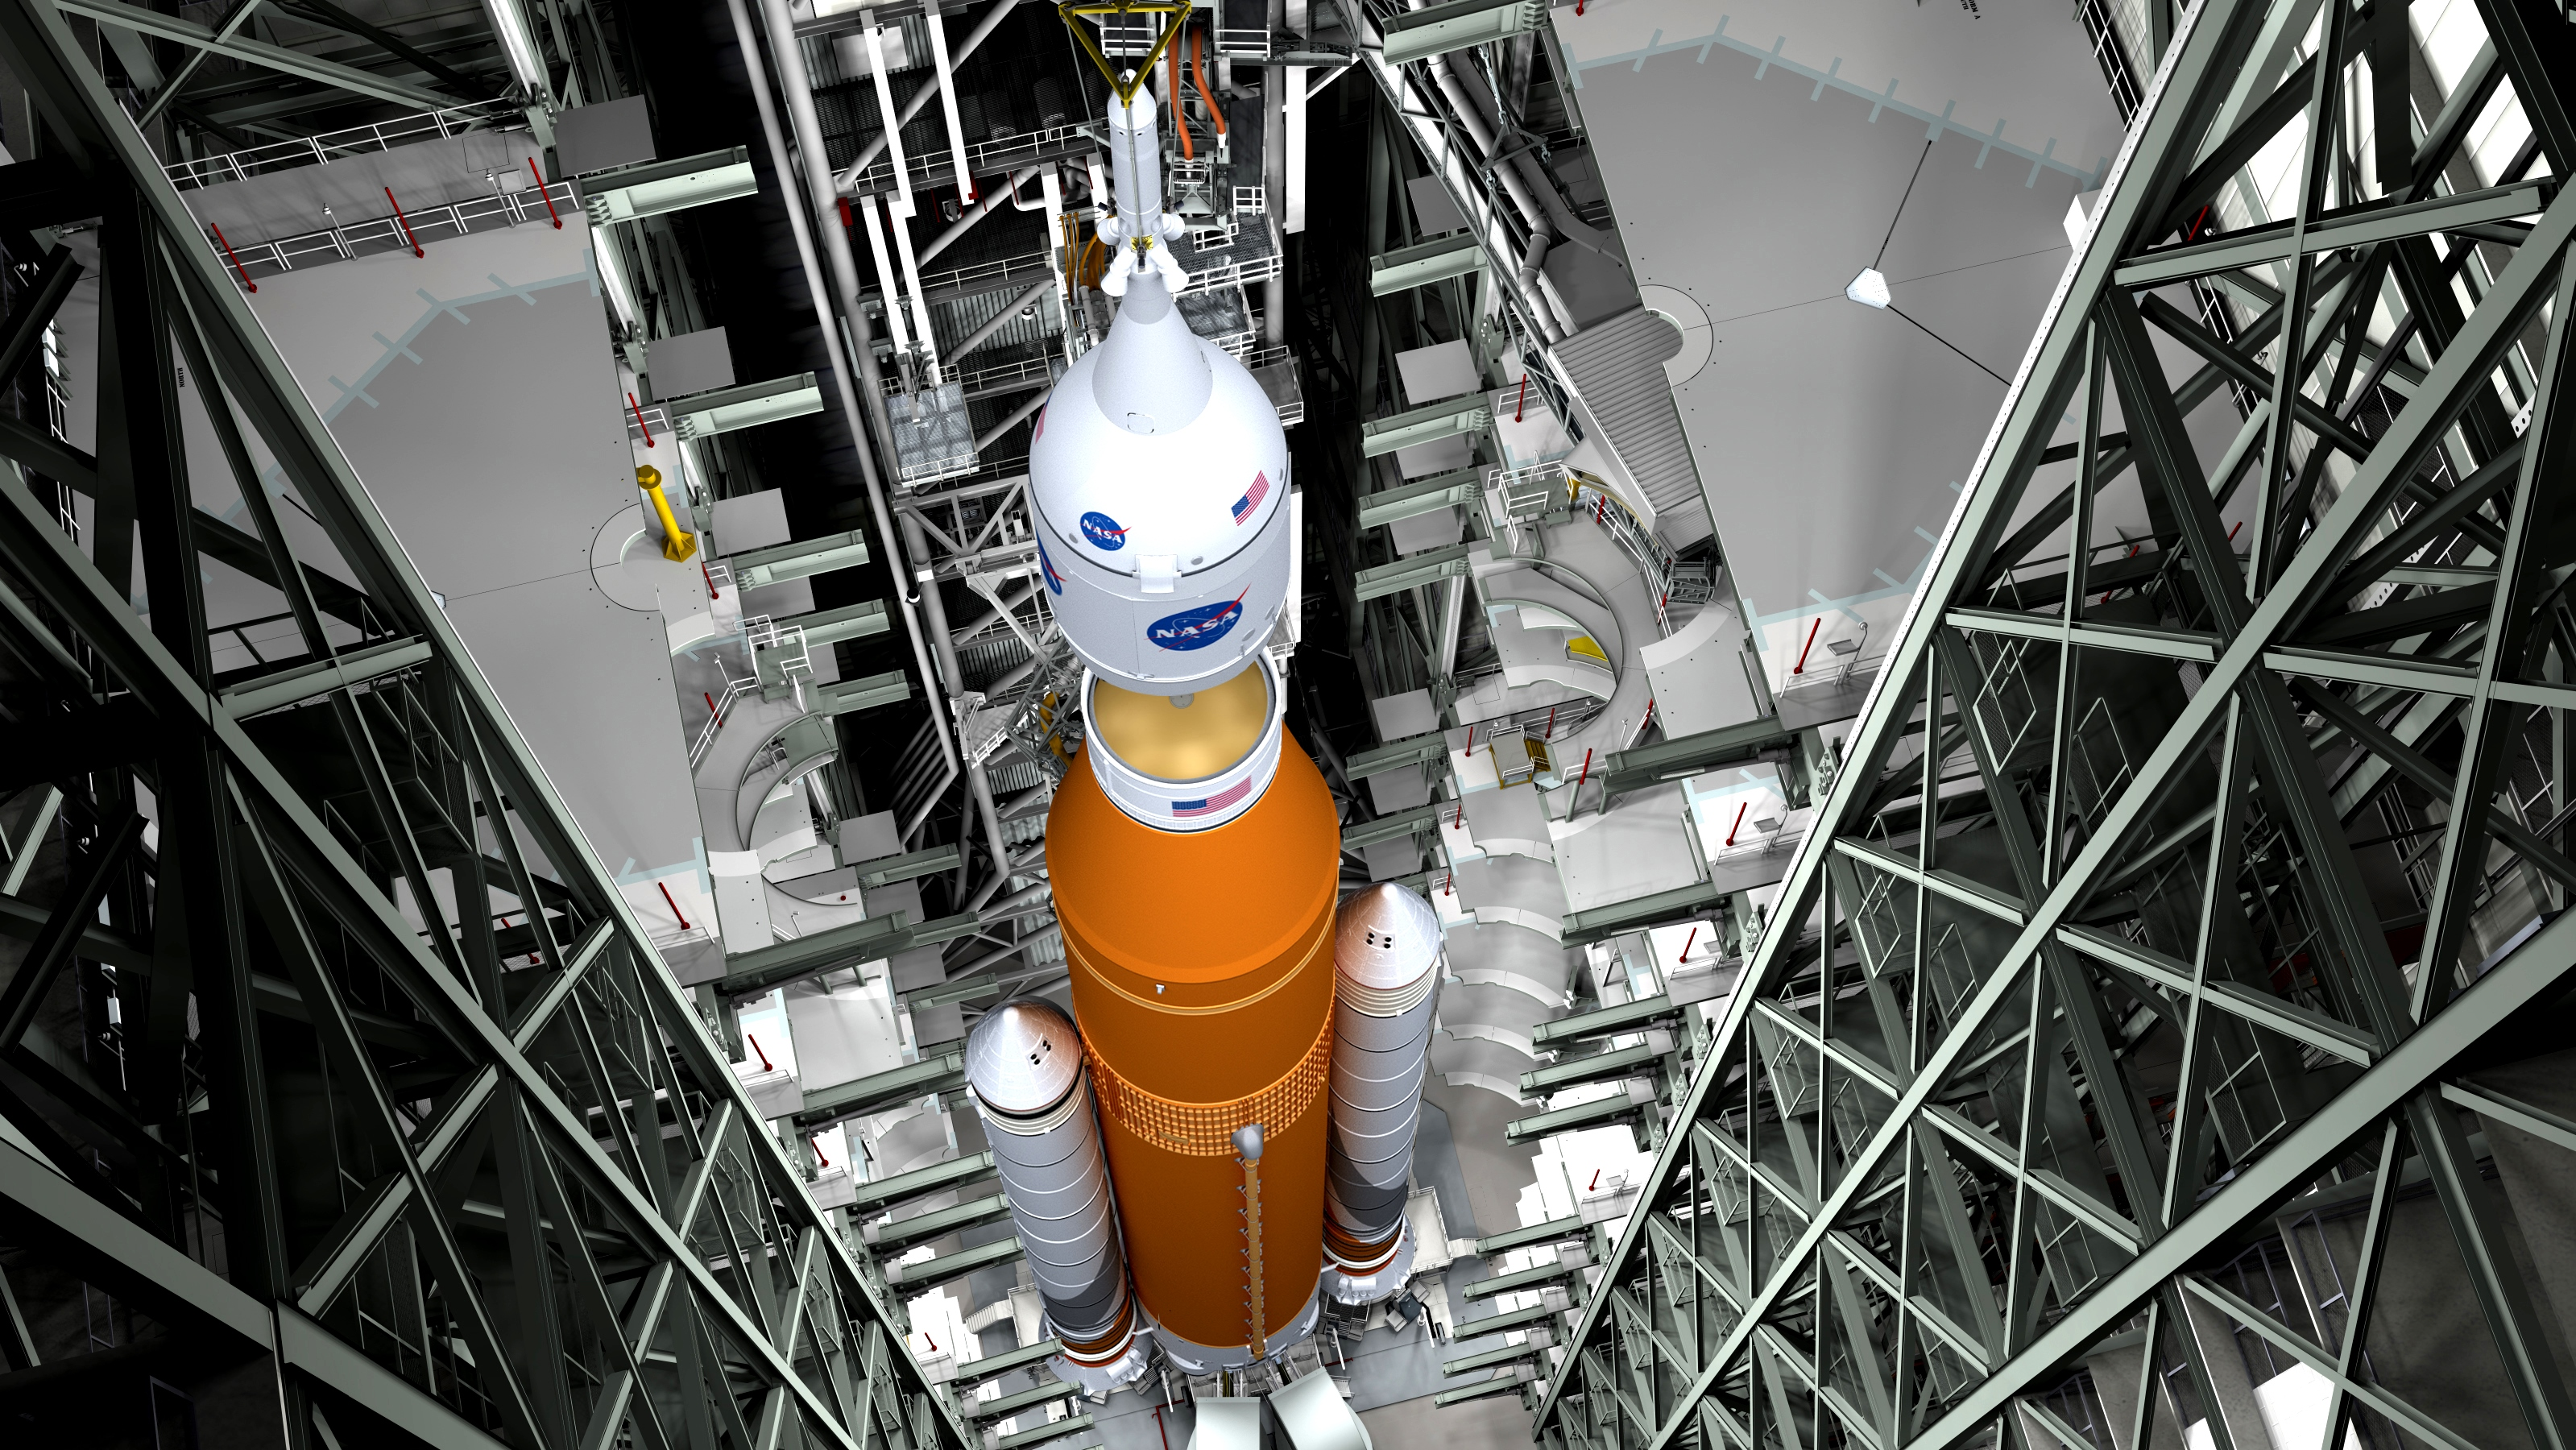 Na nasa new space shuttle design - Inside The Vehicle Assembly Building